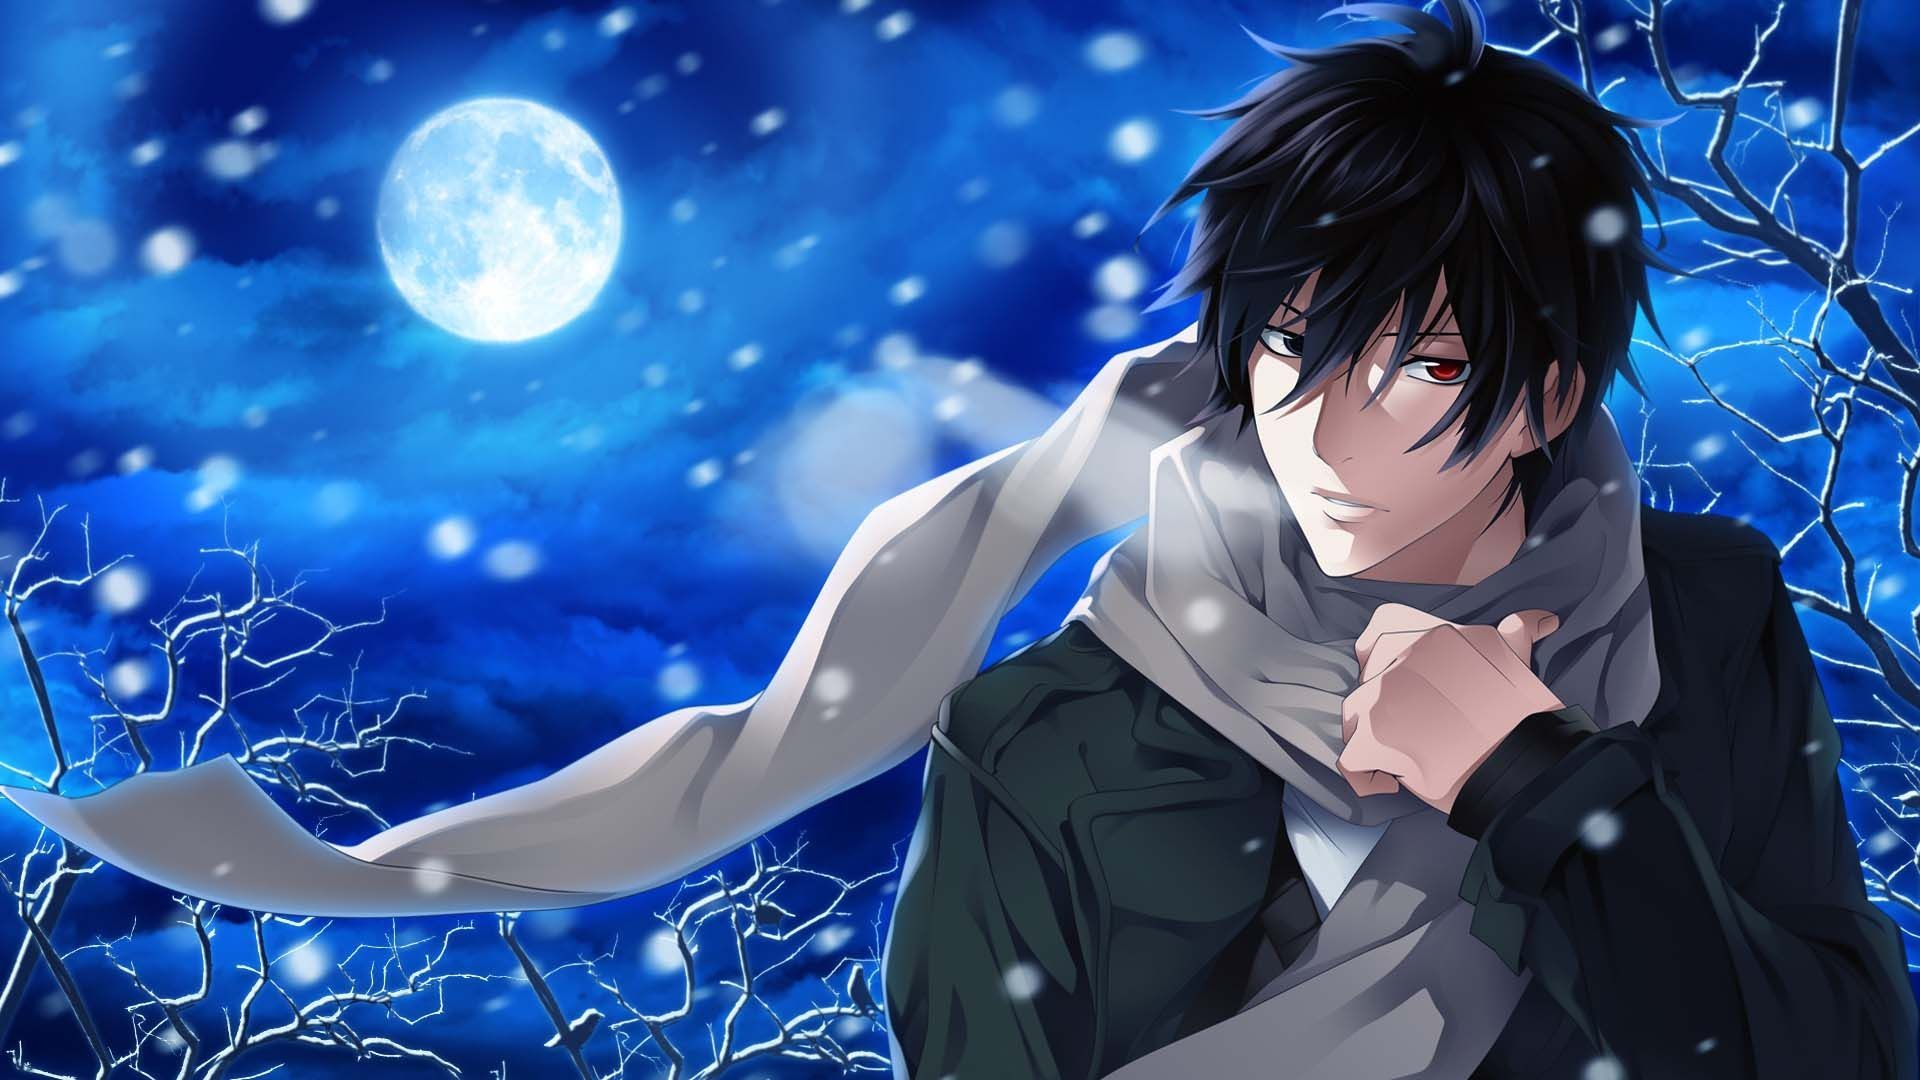 Anime boy wallpaper 66 images - Anime boy hd picture ...